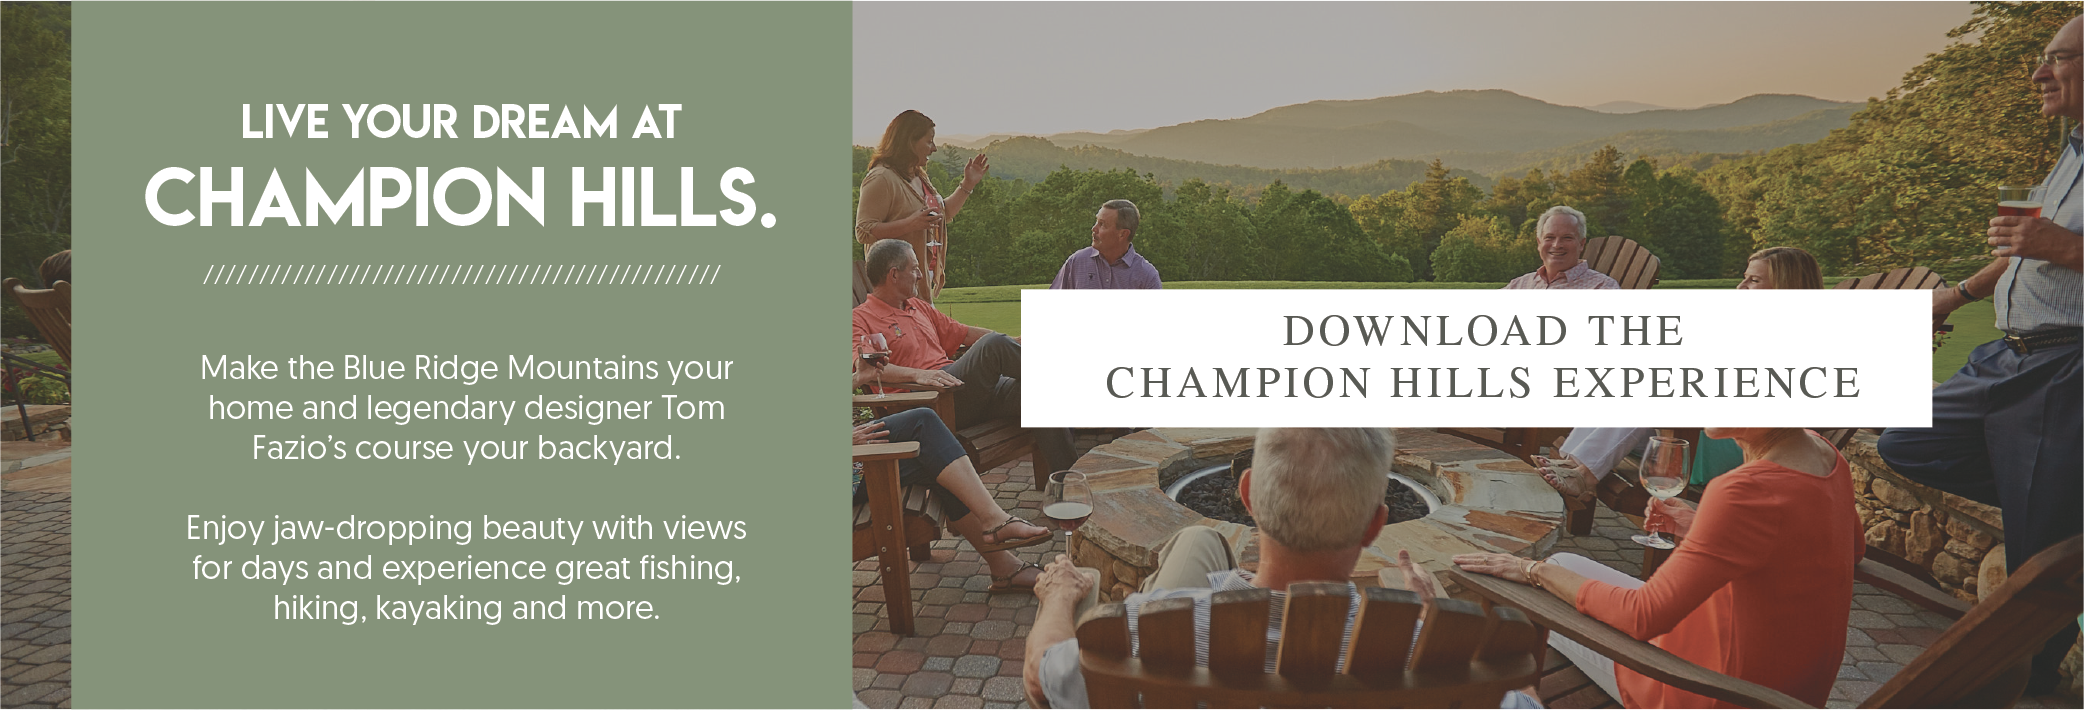 live your dream at champion hills